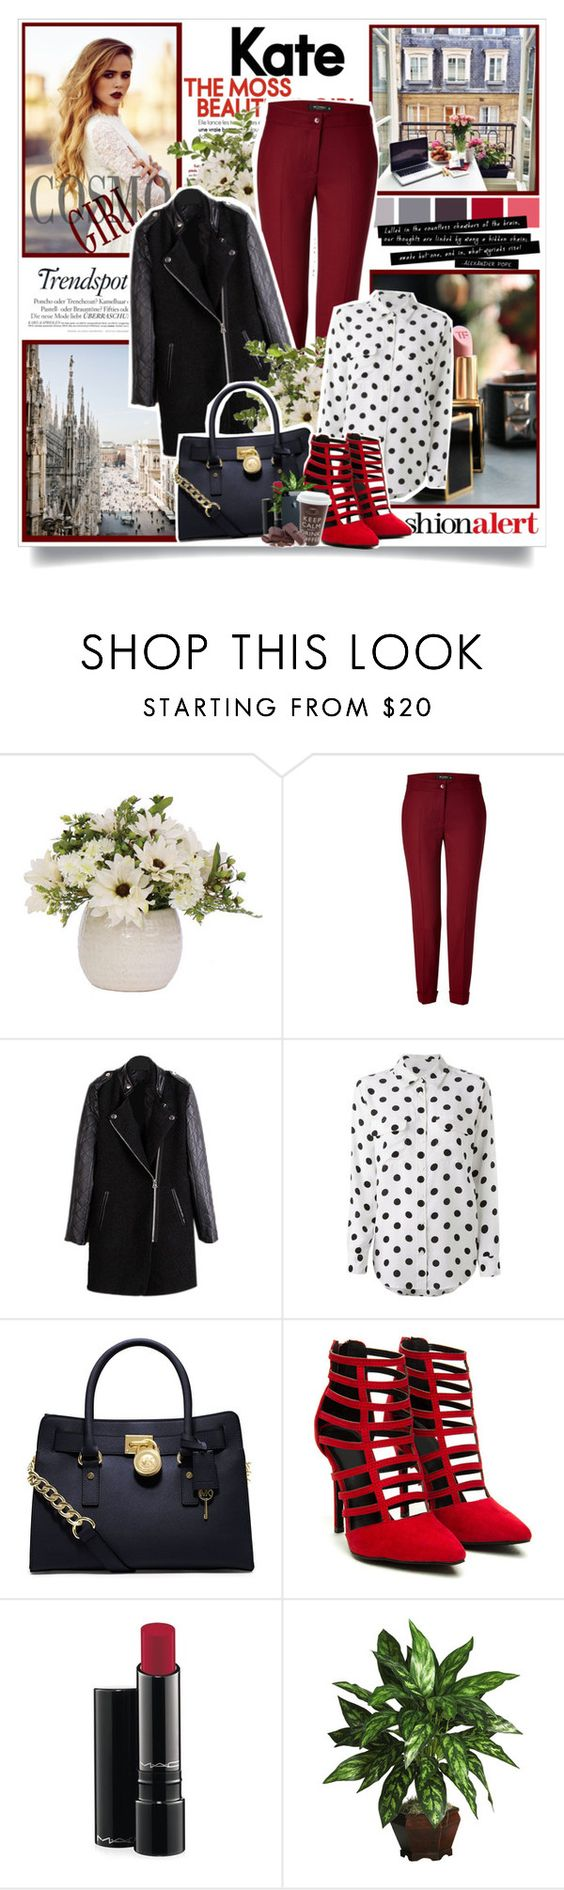 """""""1359"""" by likepolyvore13 ❤ liked on Polyvore featuring Lux-Art Silks, Etro, Tom Ford, Melissa, Equipment, MICHAEL Michael Kors, MAC Cosmetics, Nearly Natural, women's clothing and women's fashion"""